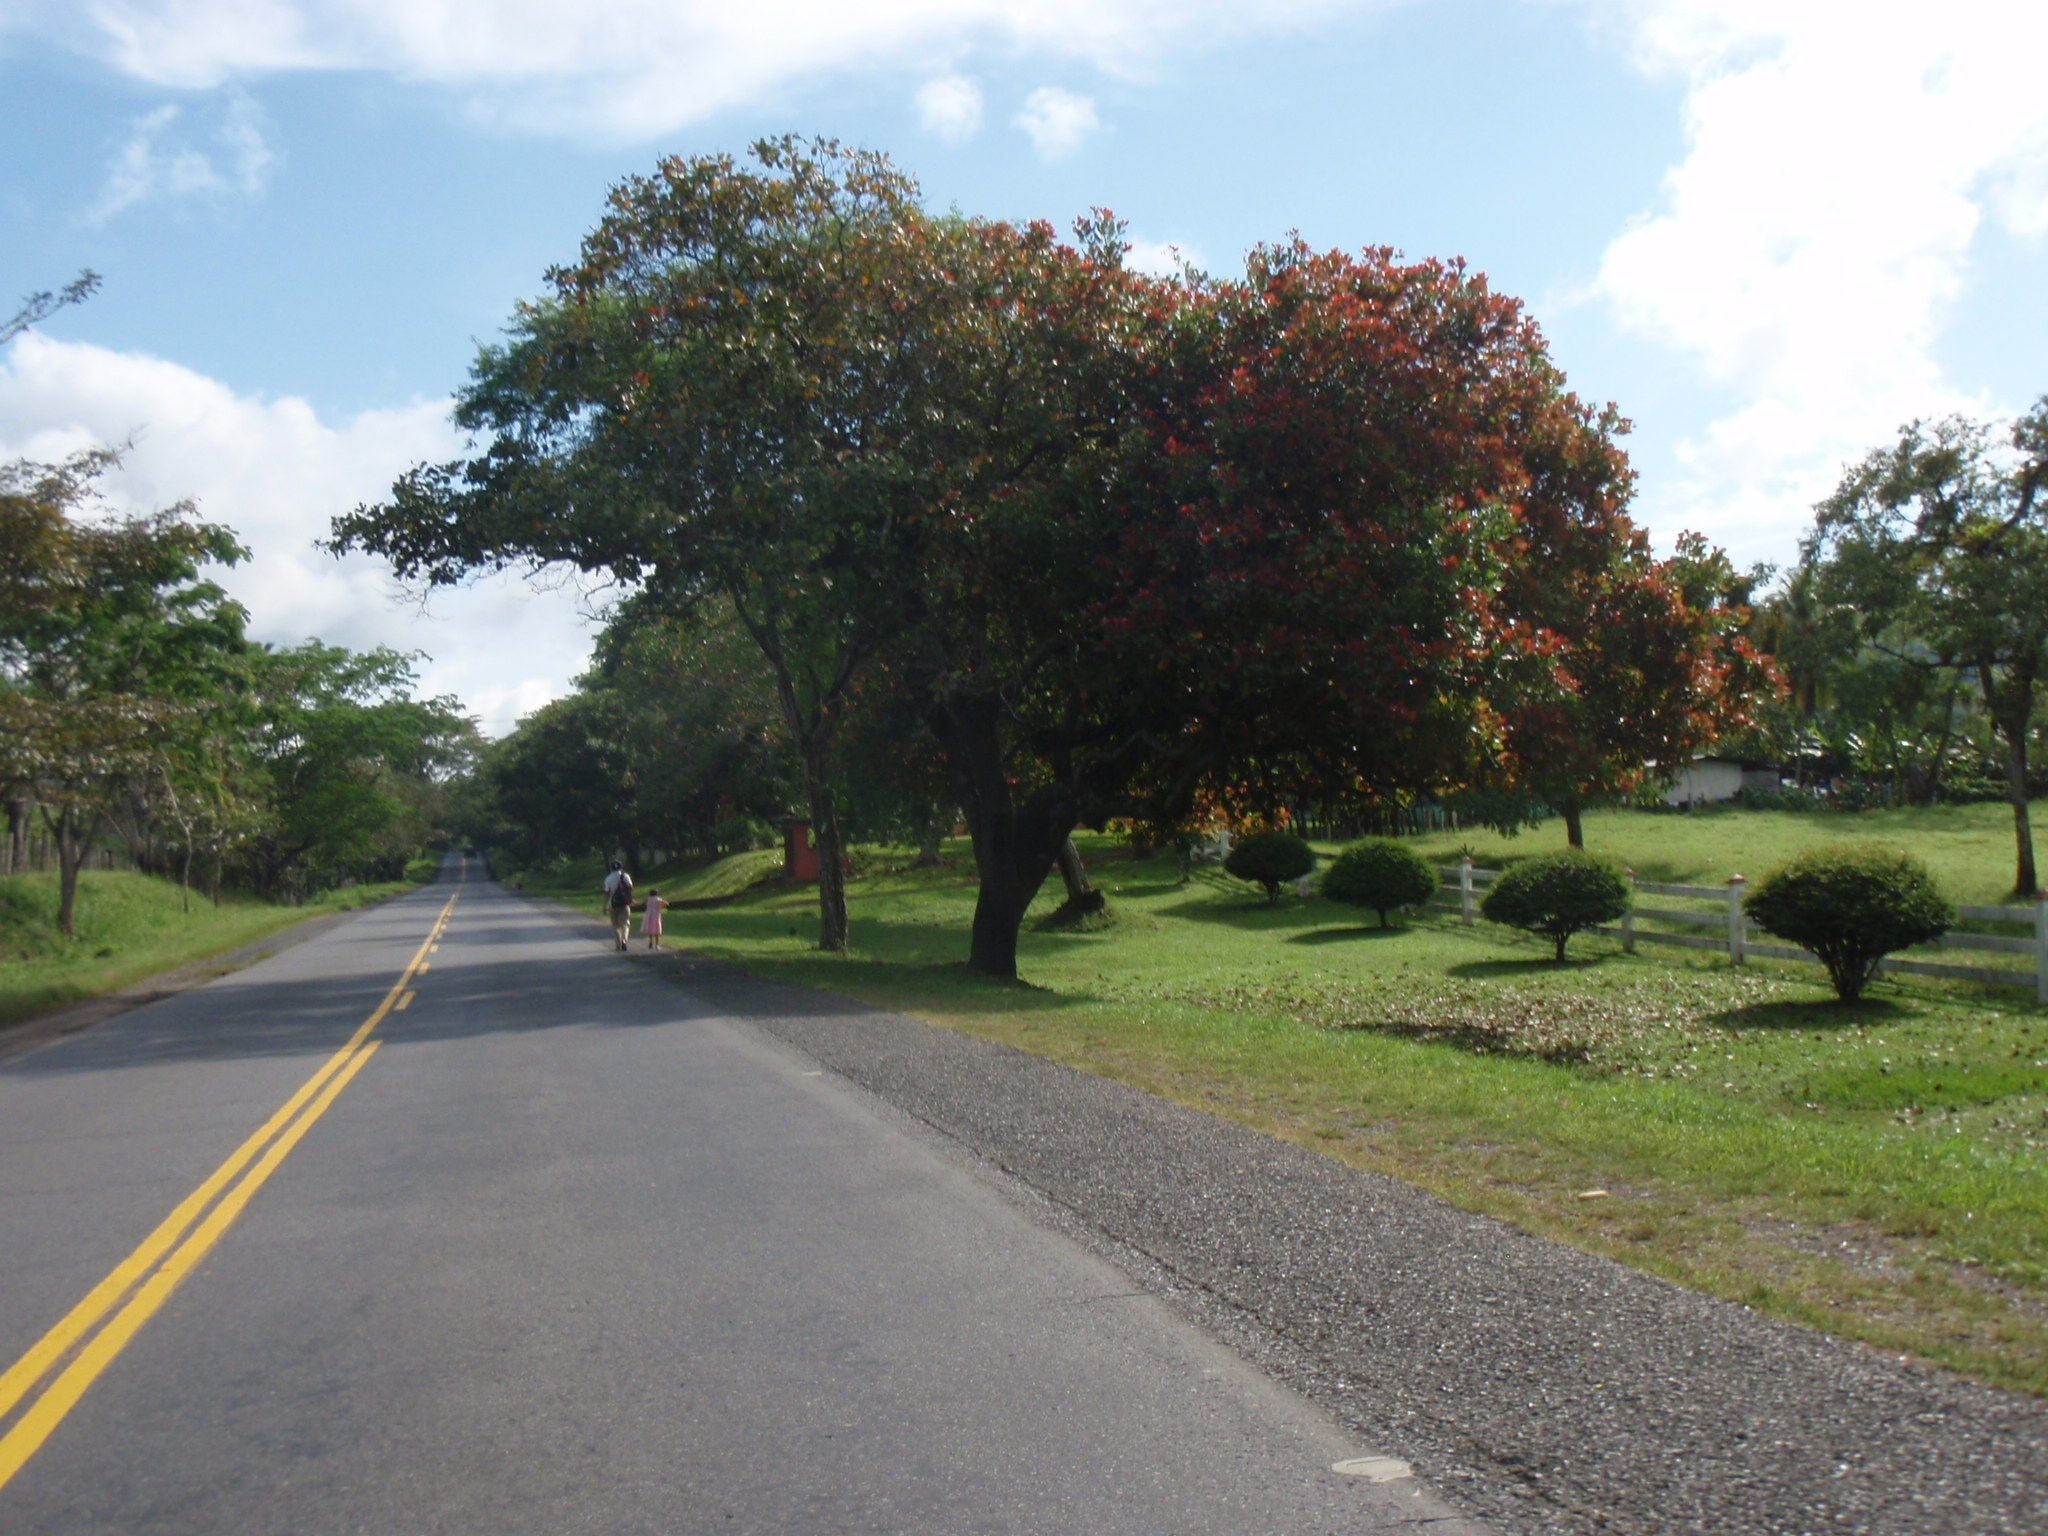 Another beautiful stretch of Panamerican Highway in Panama